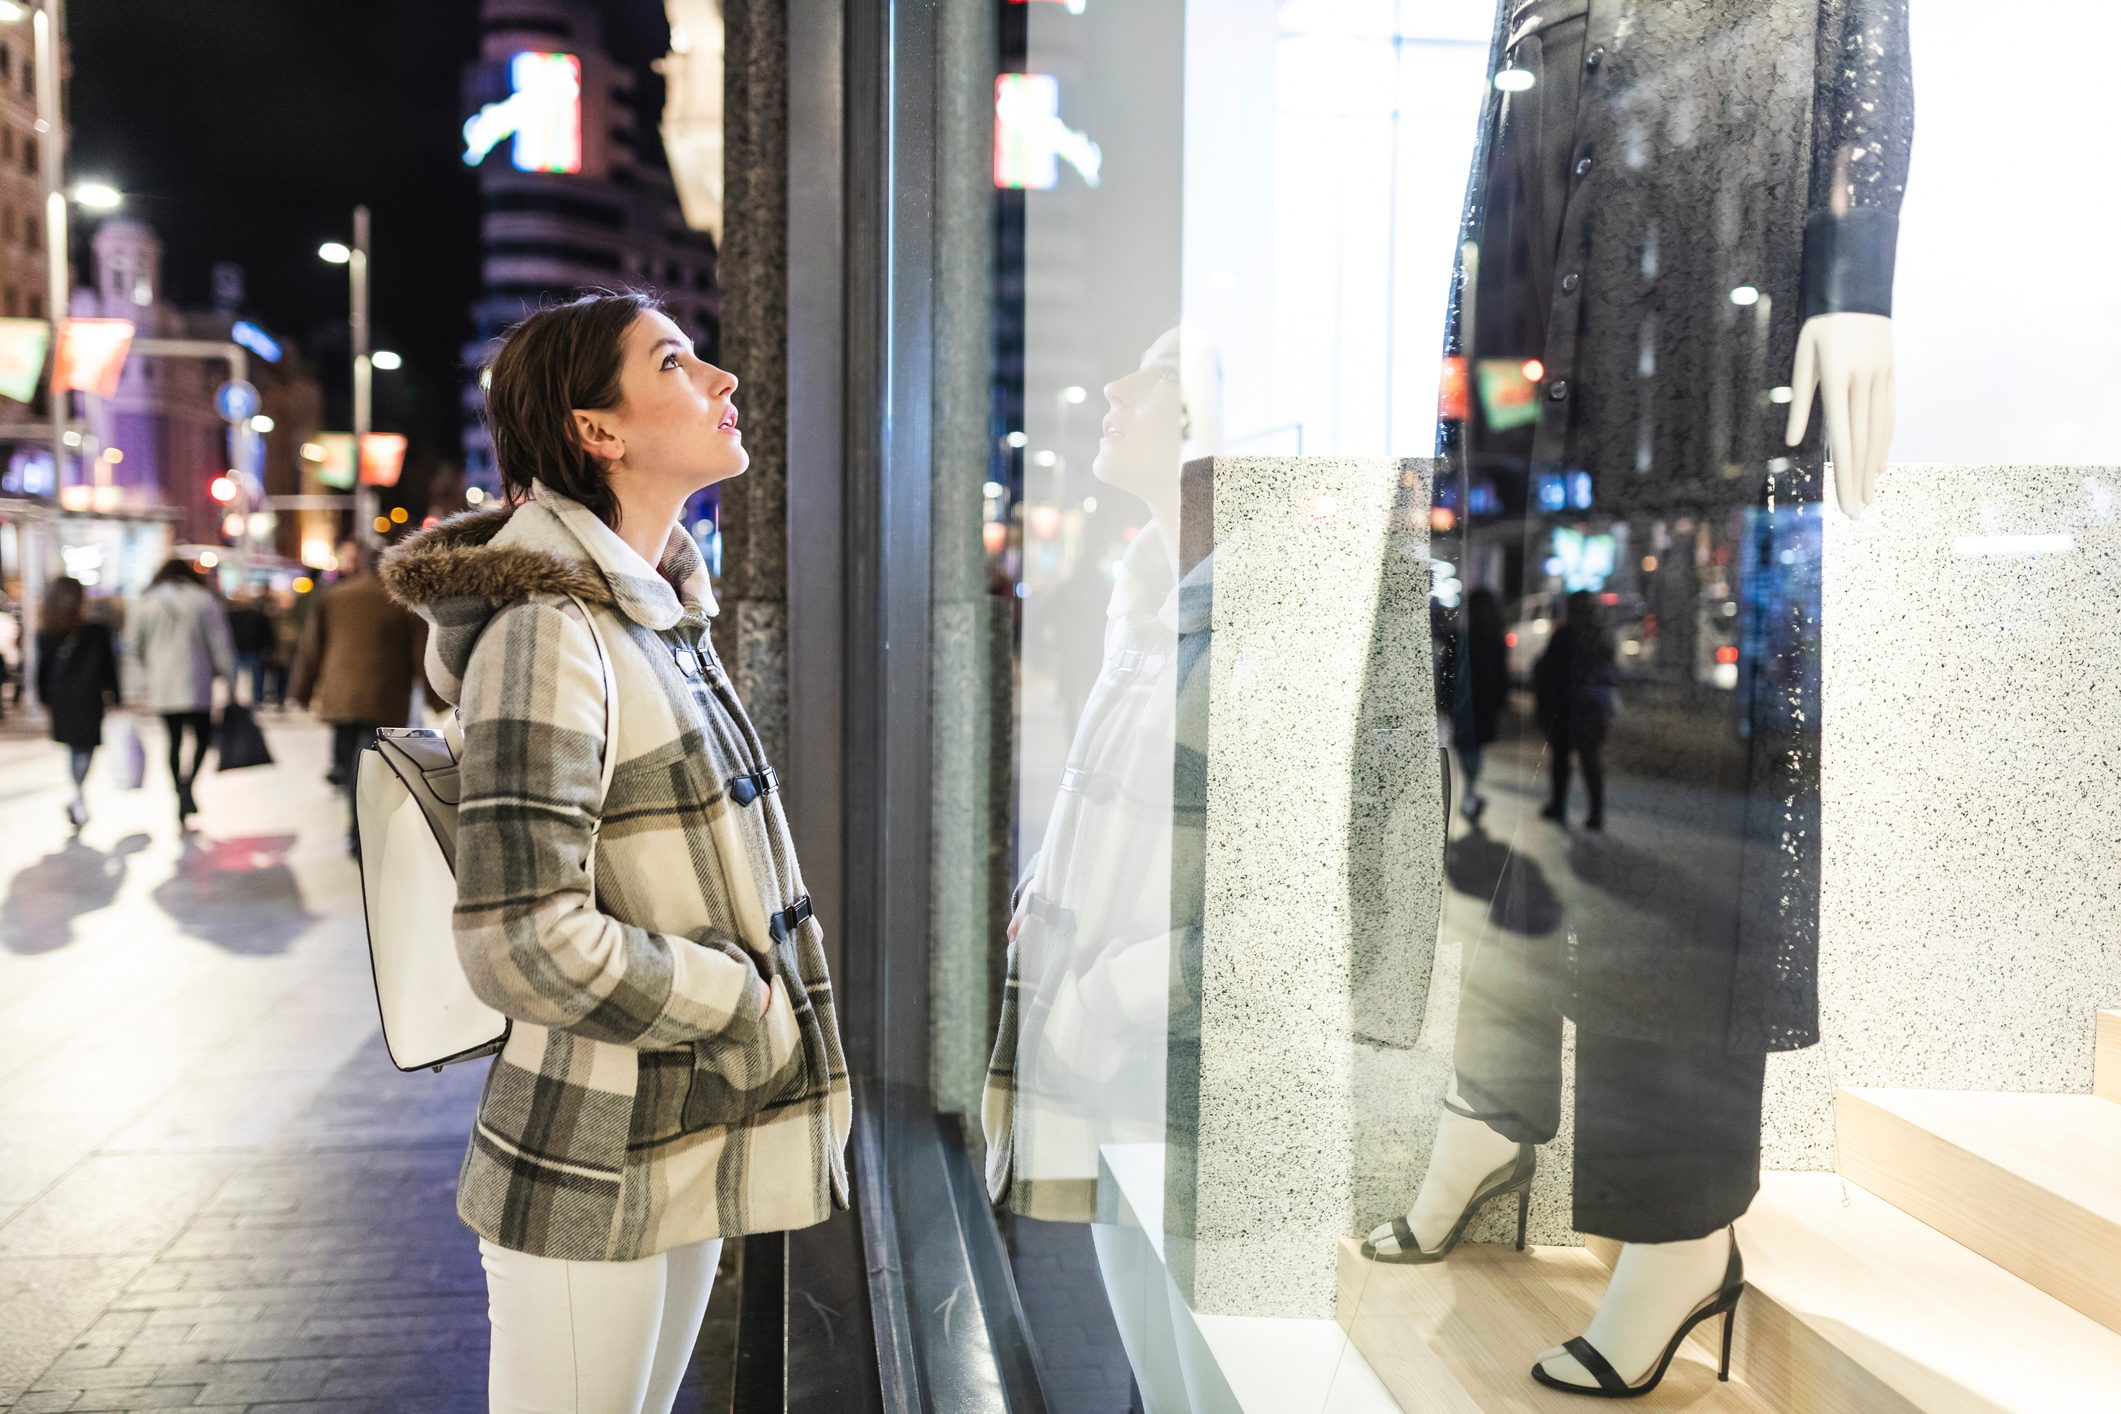 Spain, Madrid, young woman in the city at night next to Gran Via looking at a window shop